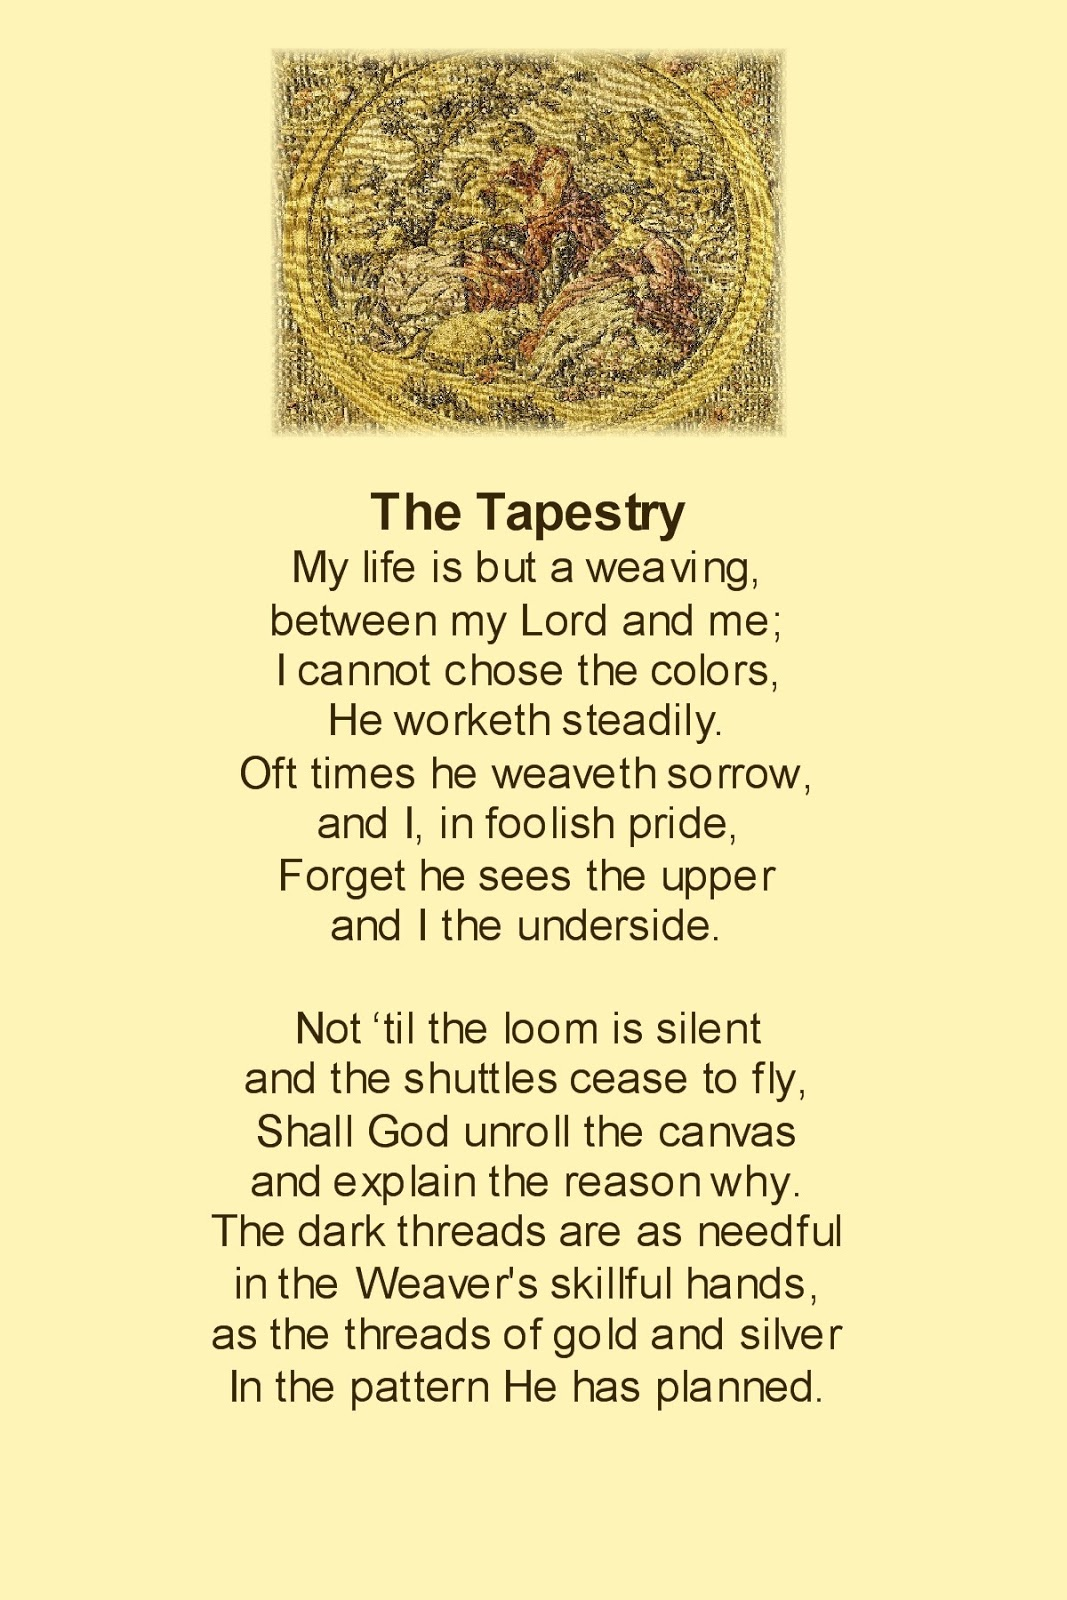 lbb poem the tapestry